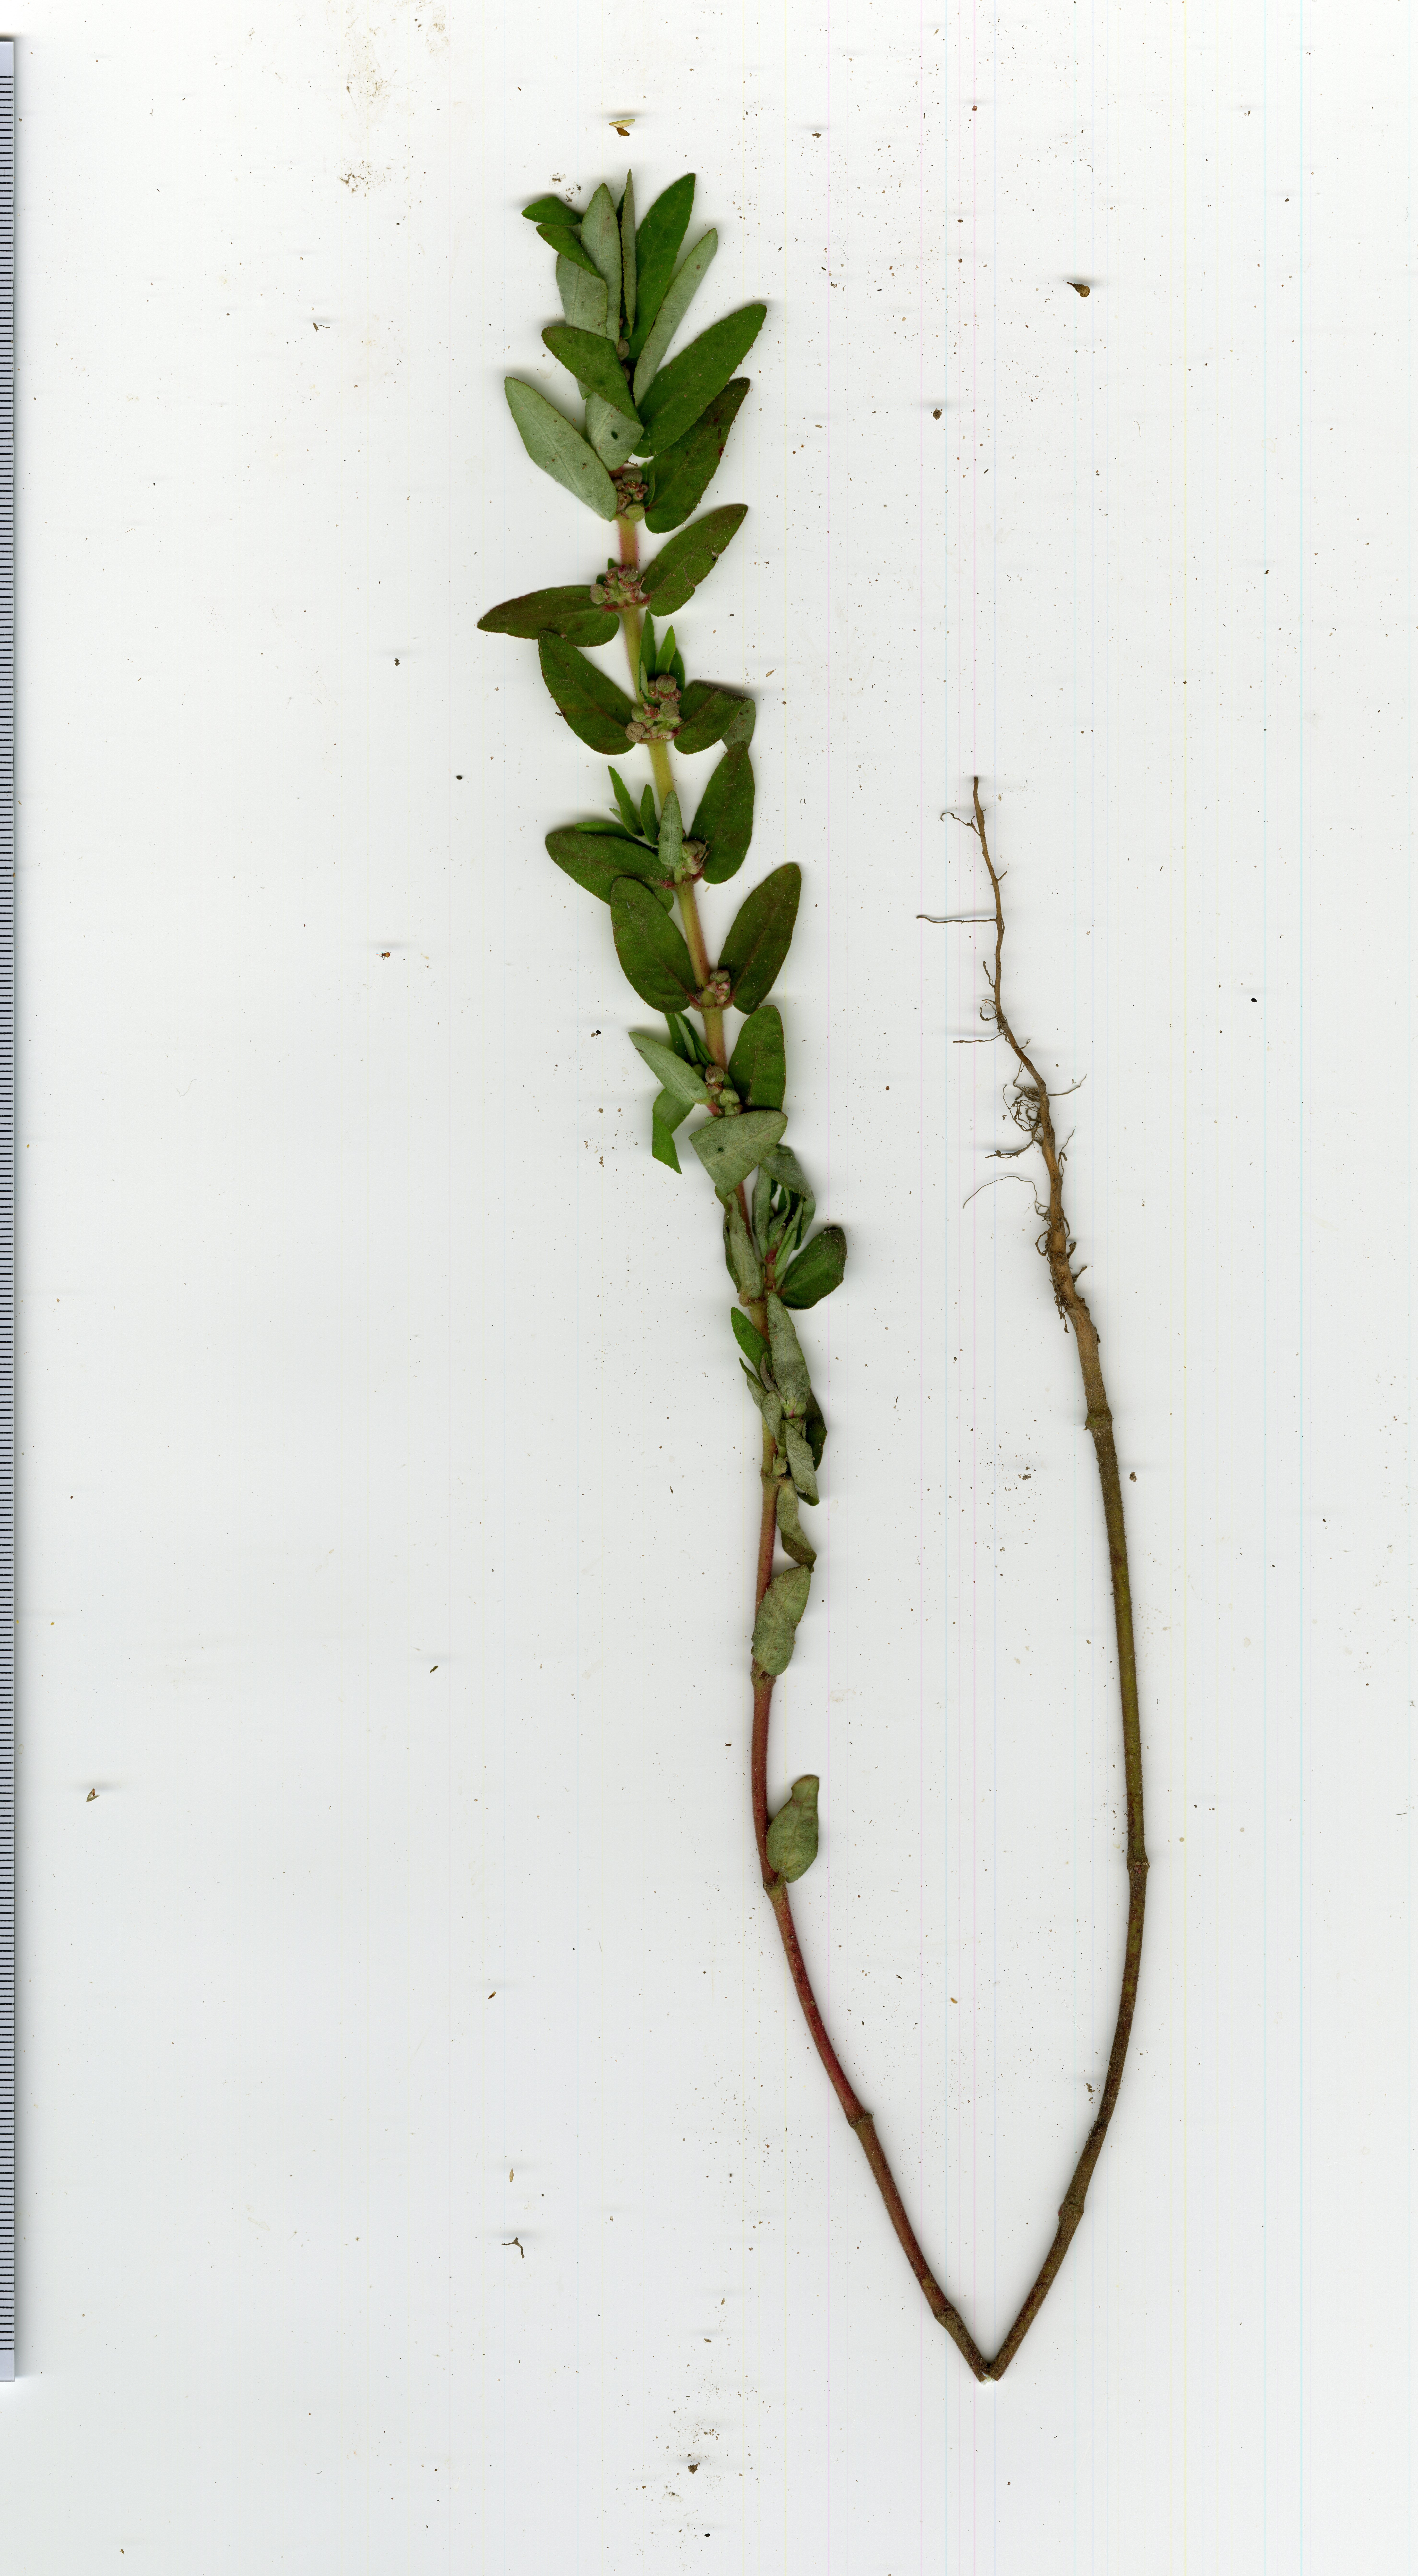 Whole plant with inflorescences